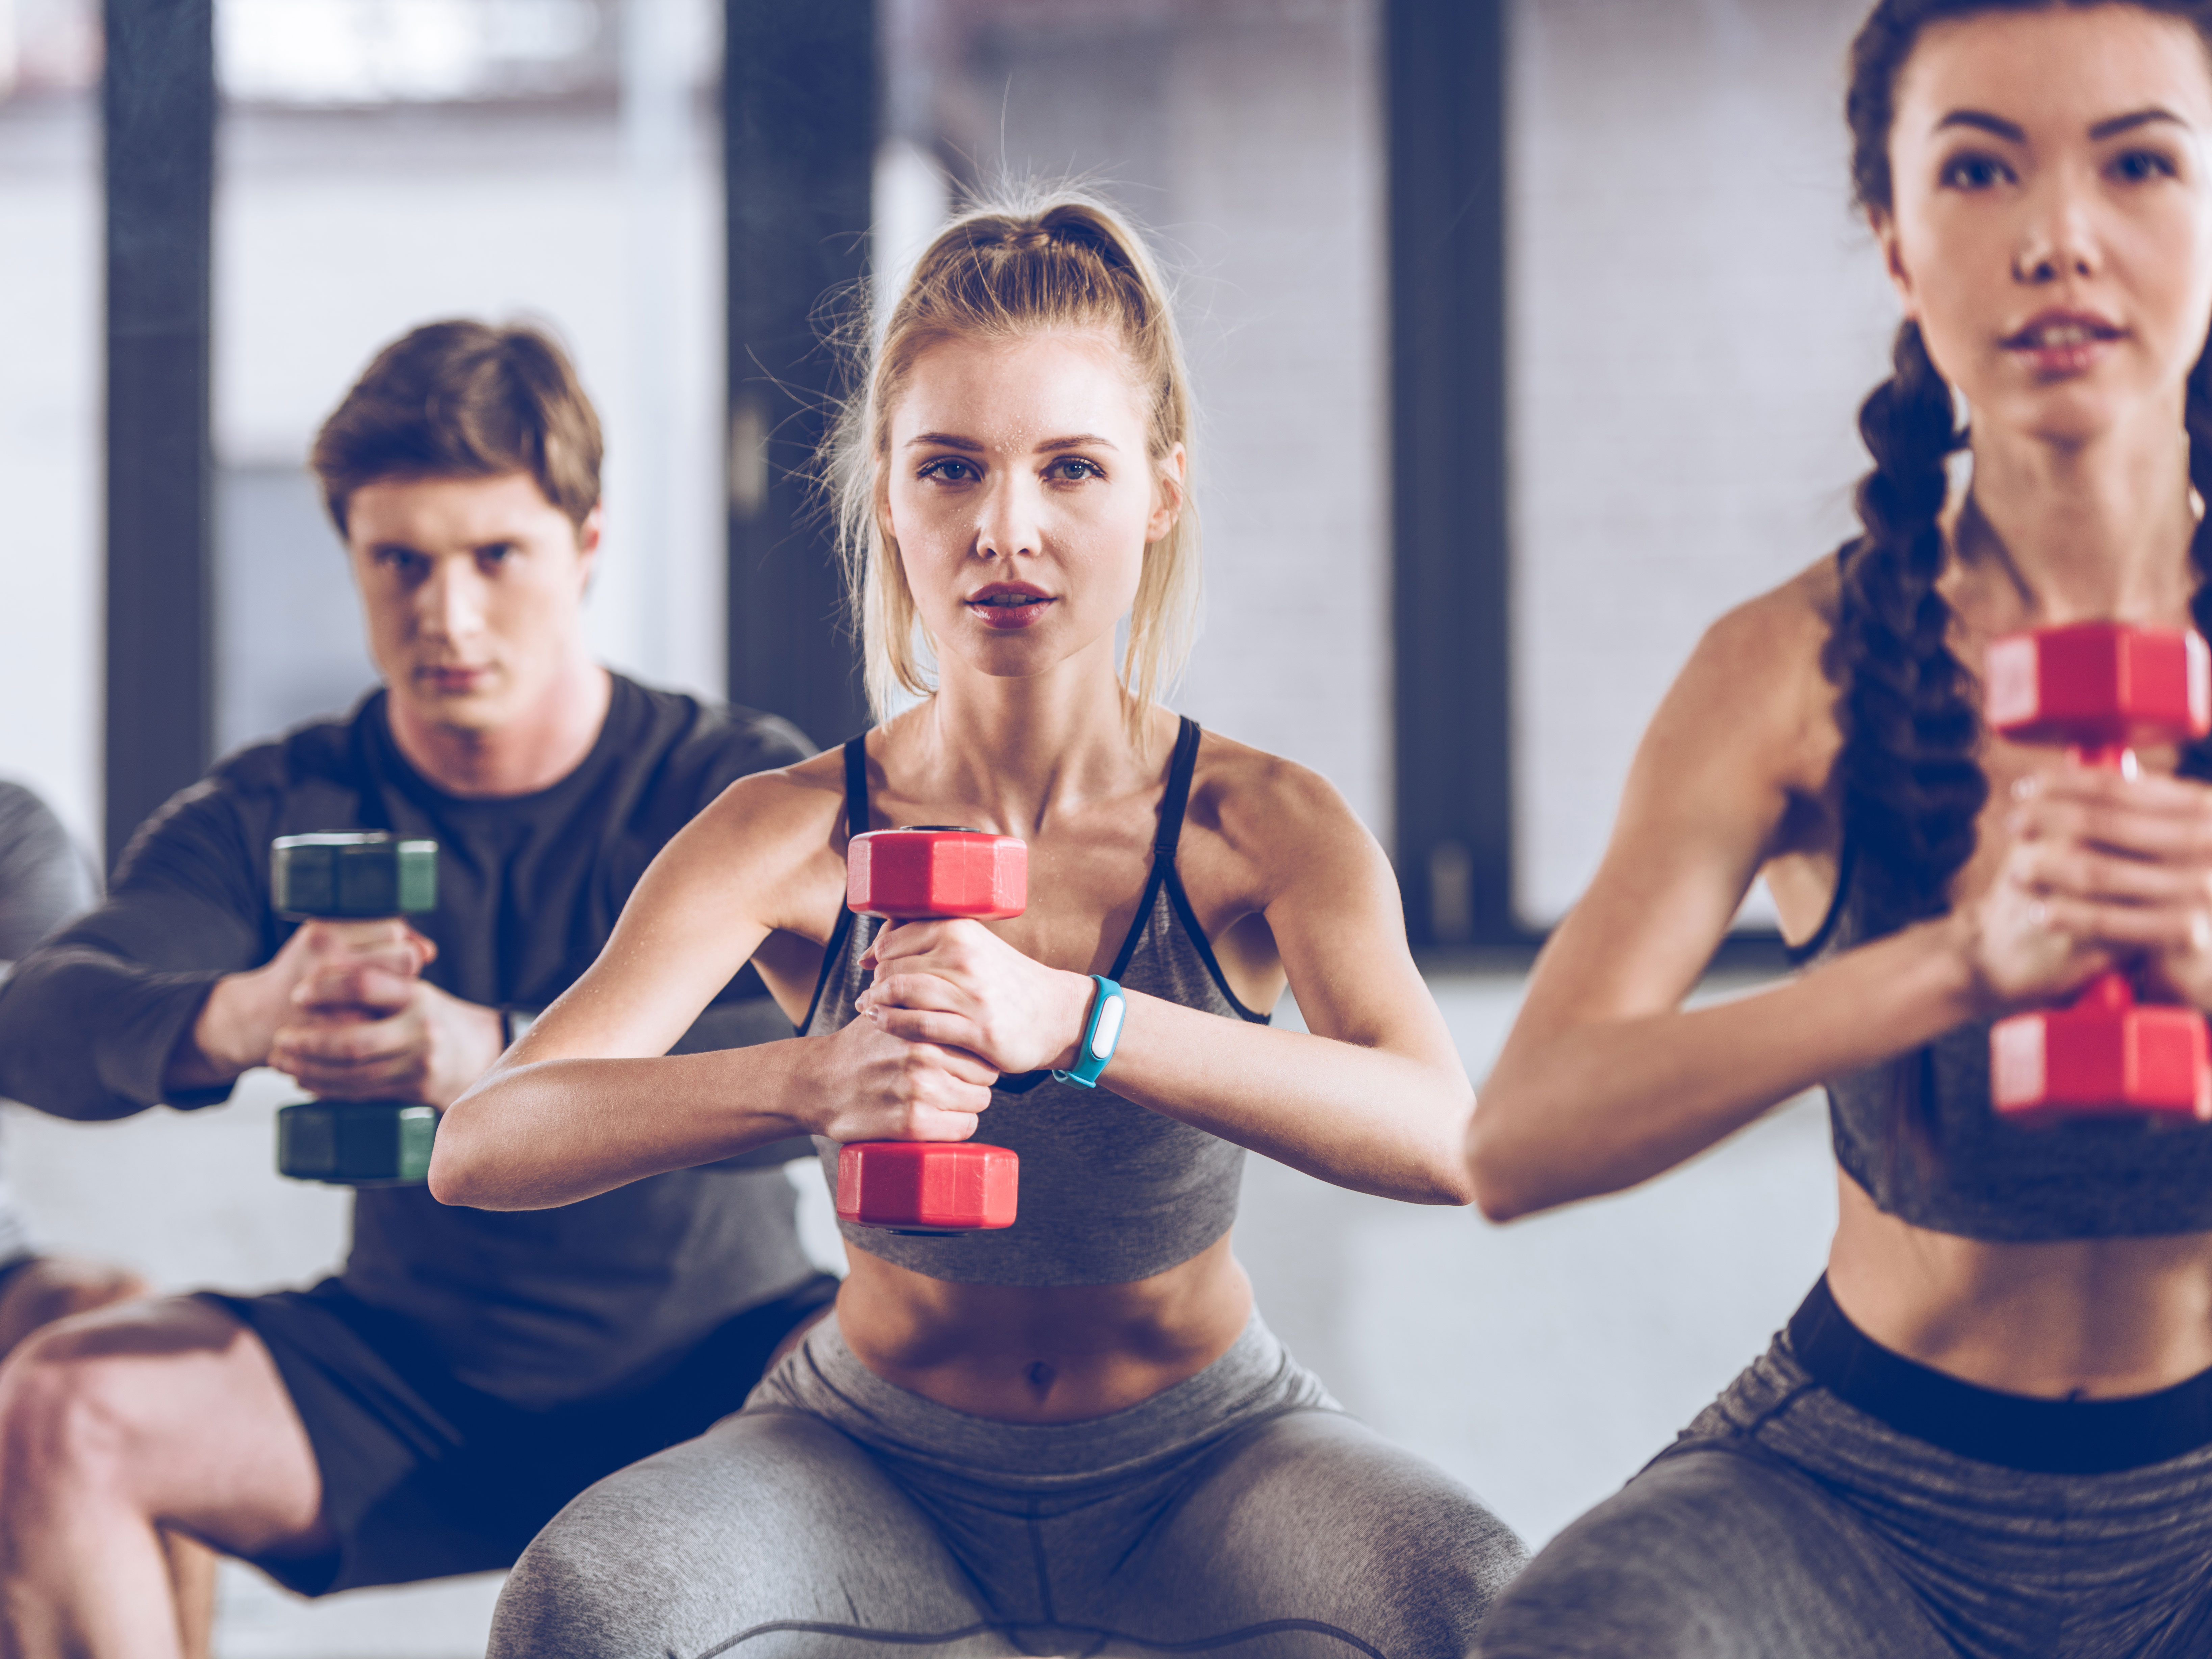 How to know if your post-workout pain is actually life-threatening